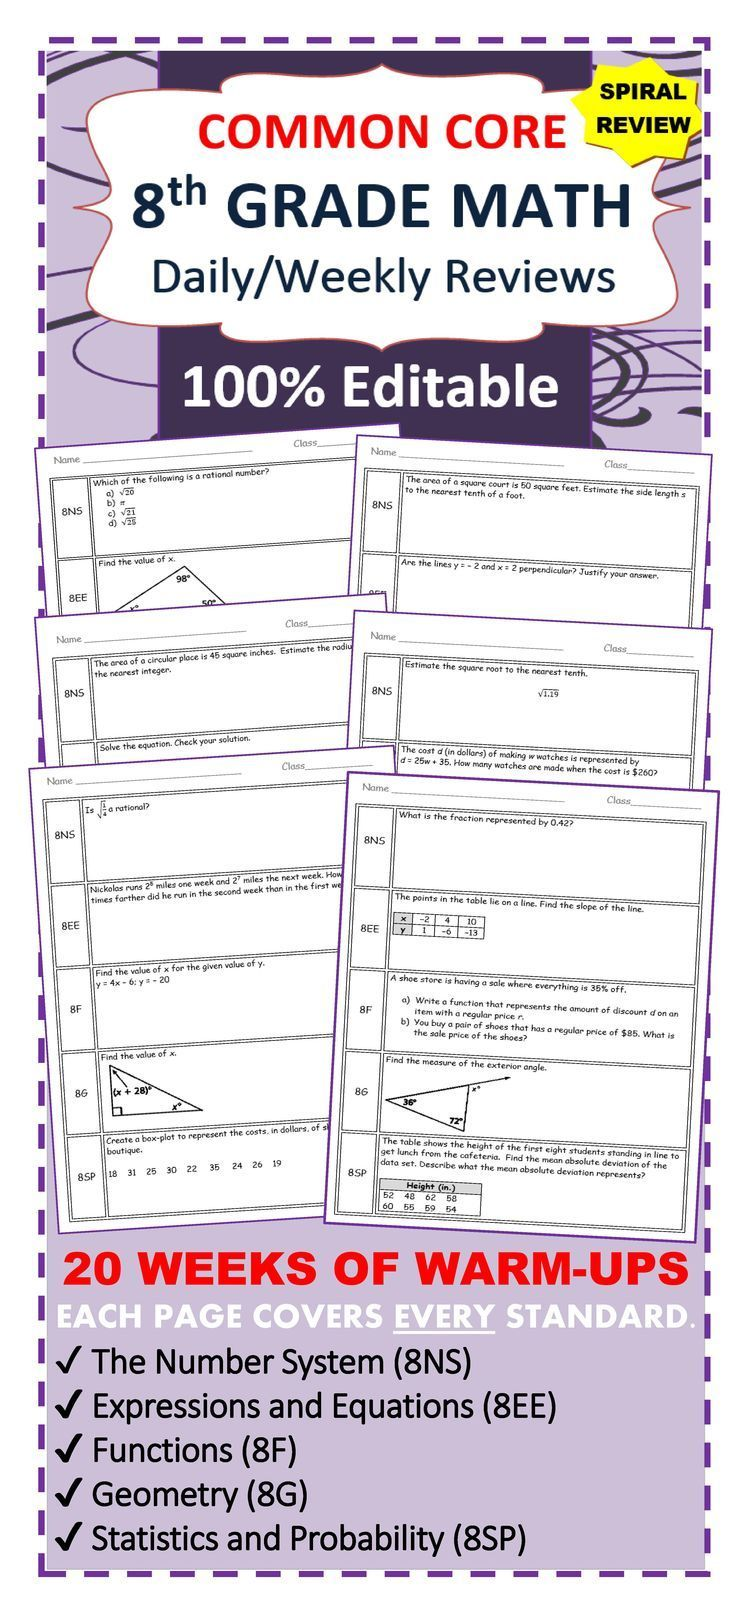 Need a SPIRAL REVIEW of the 8th Grade Math Common Core standards?   This resource contains 20 WEEKS of review specifically written for the common core math standards for 8th grade.   The review sheets are organized into 5 boxes. Each box contains problems from the 5 domains of the 8th grade CCSS standards including:  ✔ The Number System (8NS) ✔ Expressions and Equations (8EE) ✔ Functions (8F) ✔ Geometry (8G) ✔ Statistics and Probability (8SP)